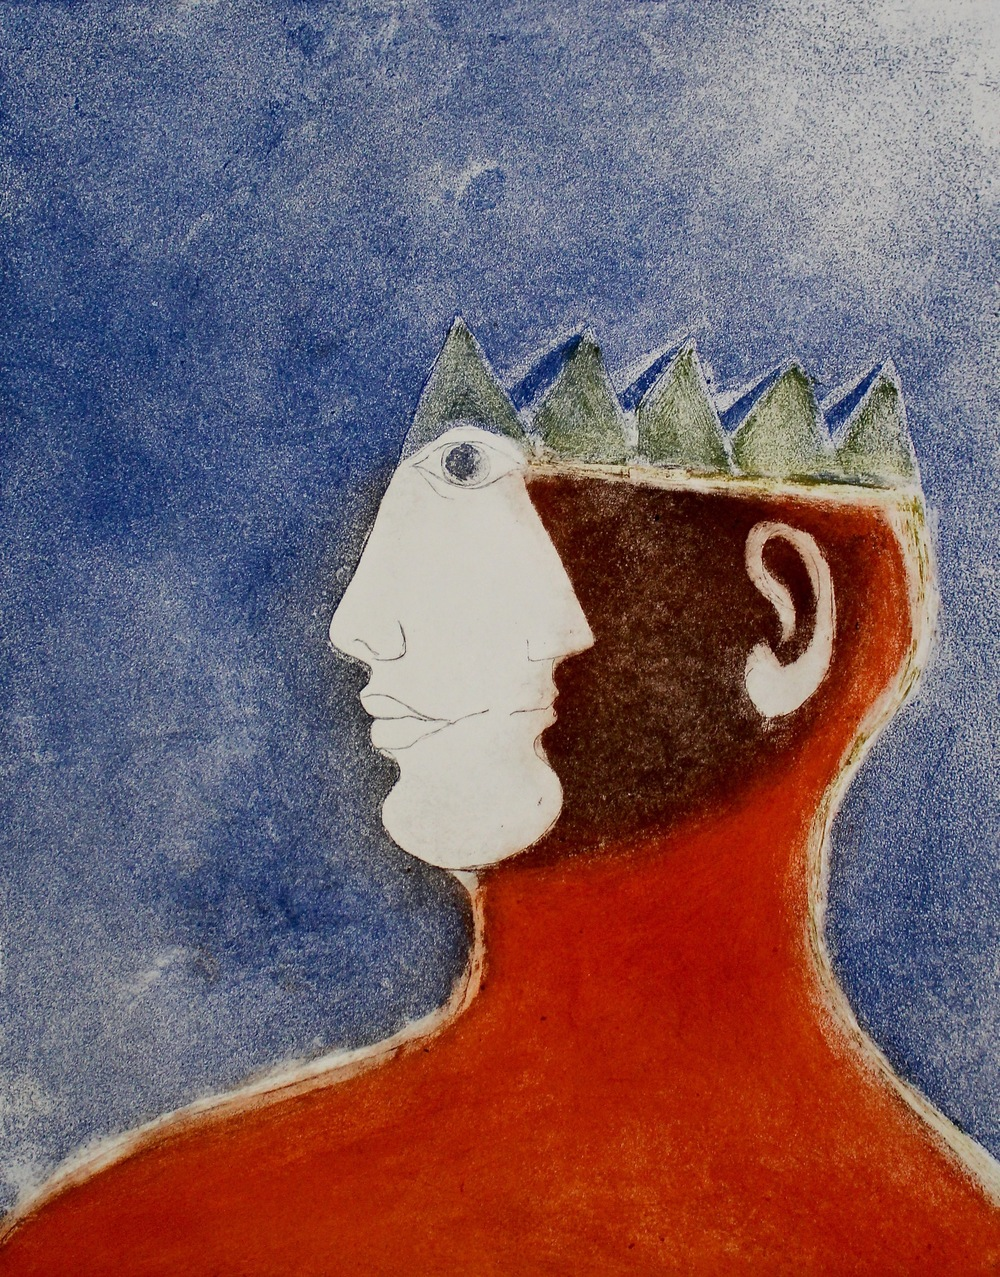 Ahmed Morsi, Crowned Head Series, 1993, Lithograph on zinc plates & Acquatint, 50 x 40 cm.